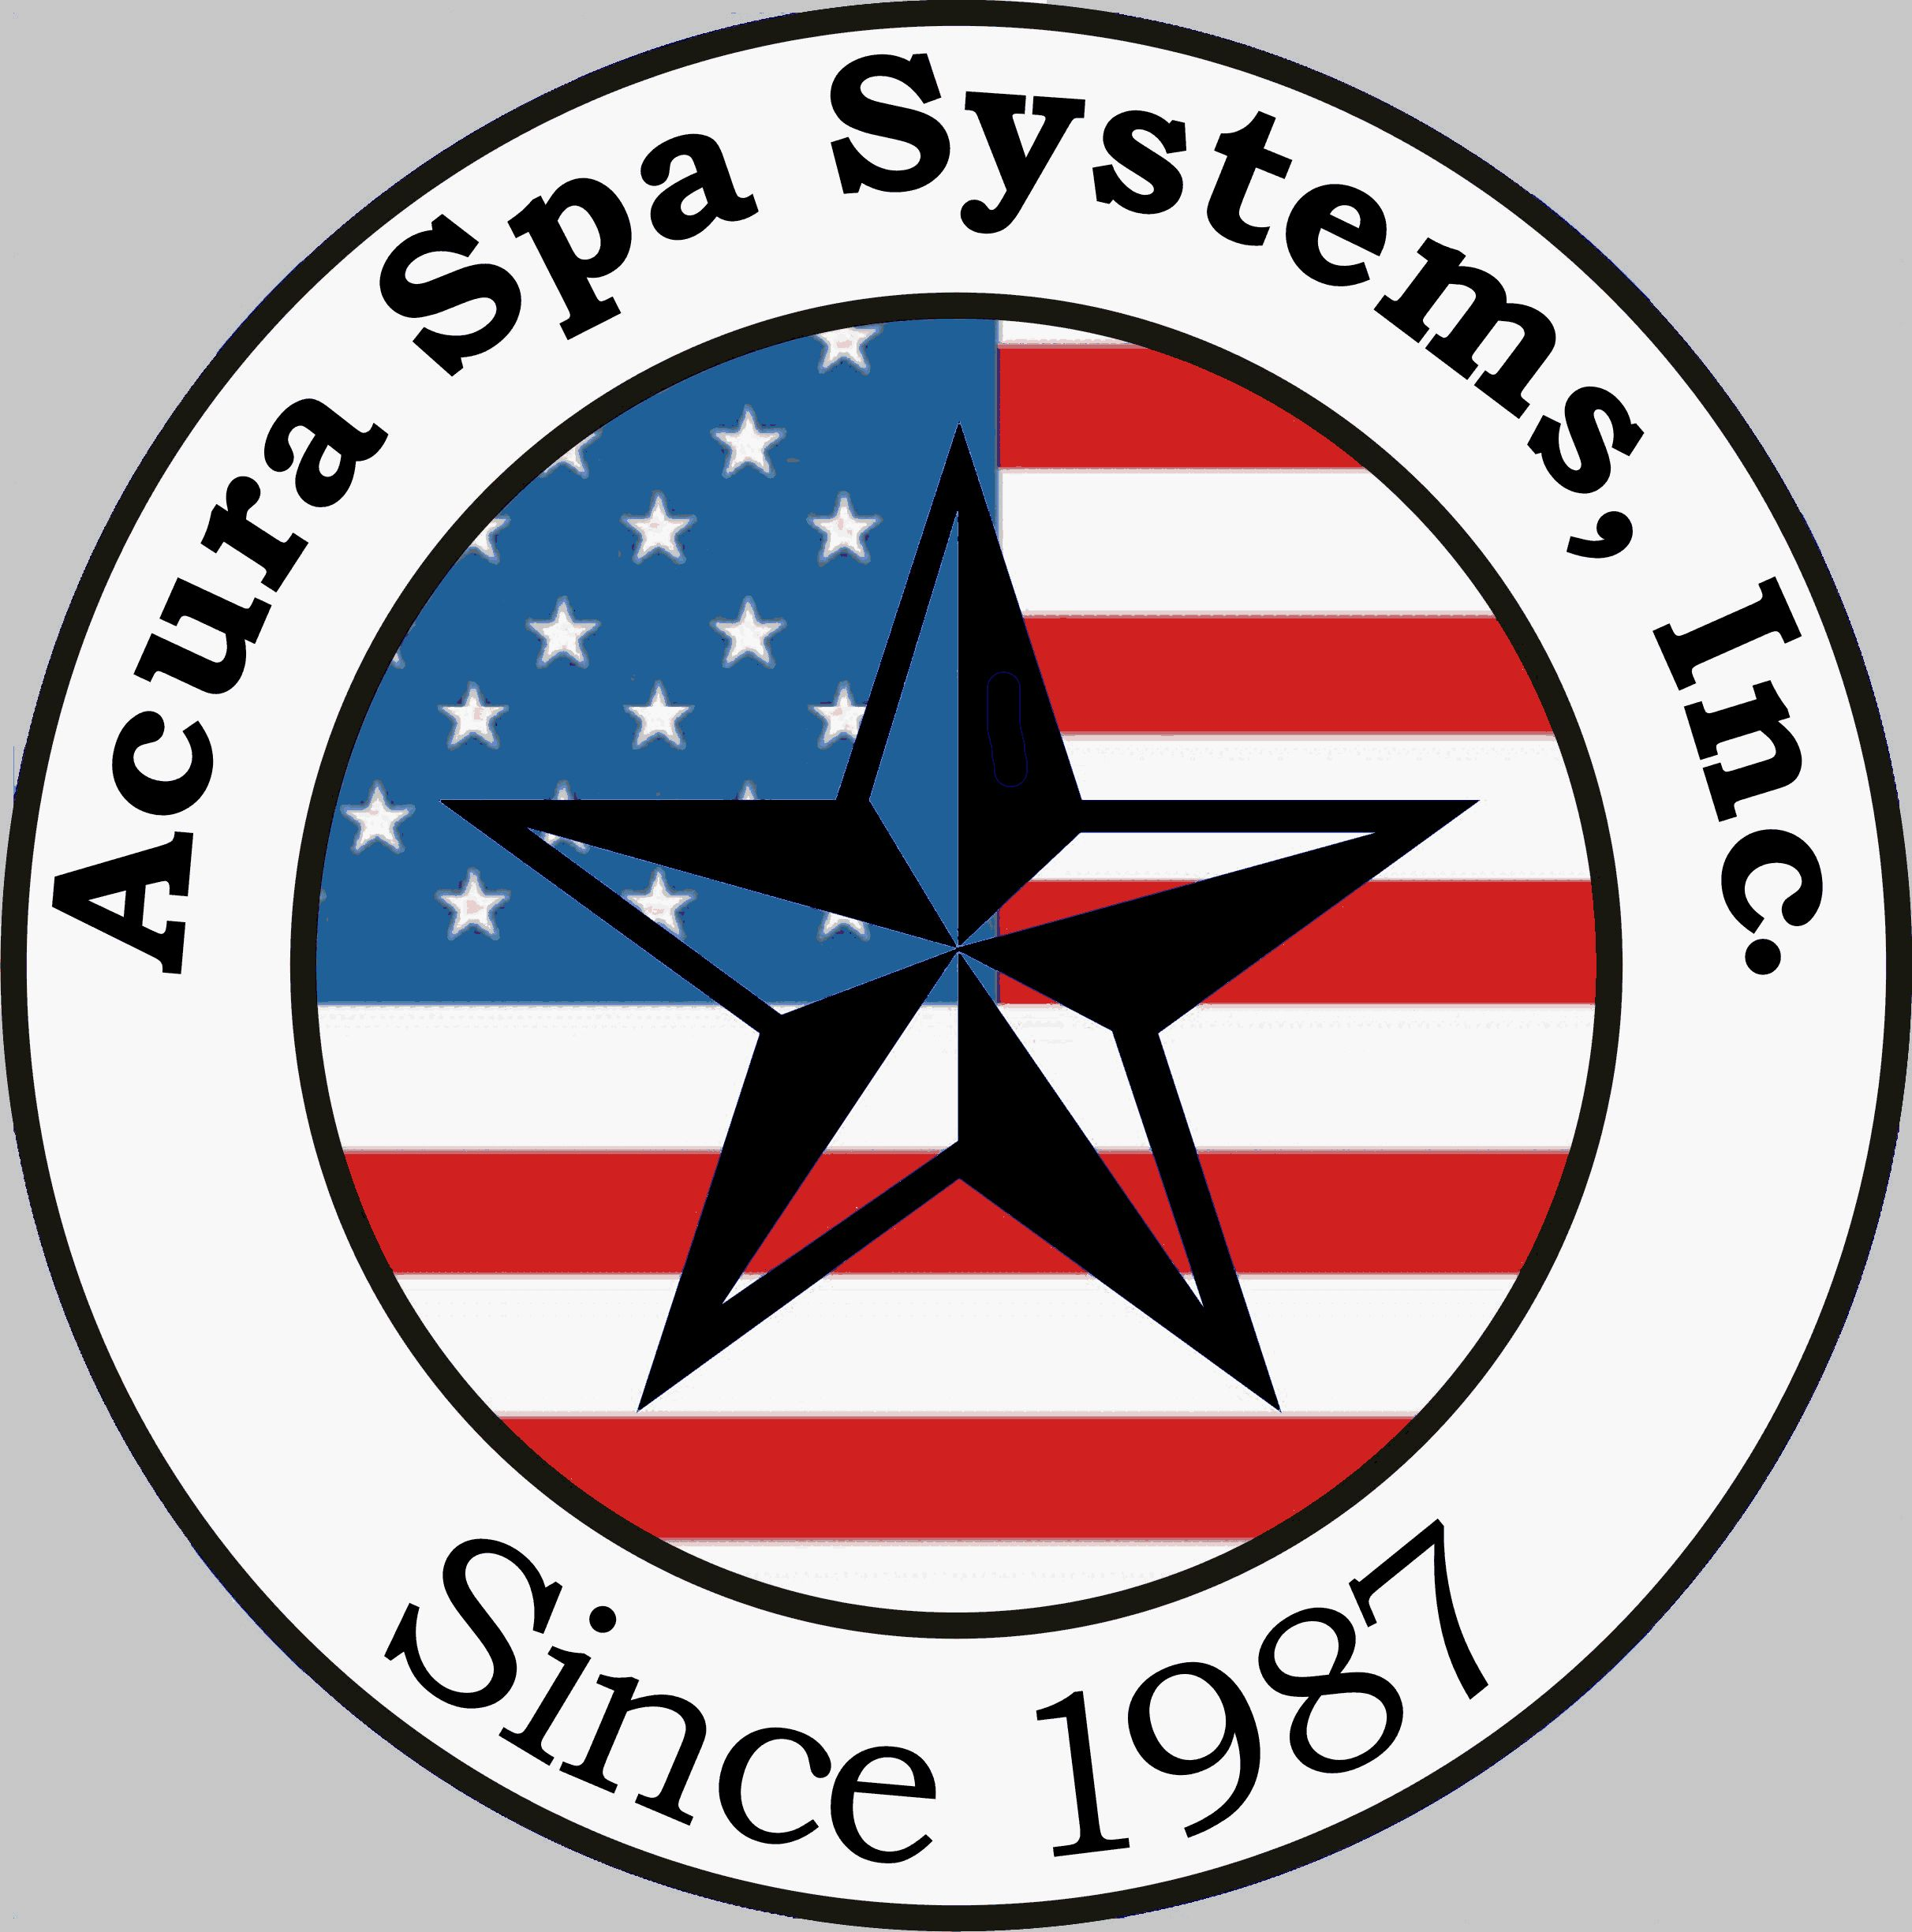 Acura Spas Systems, since 1987